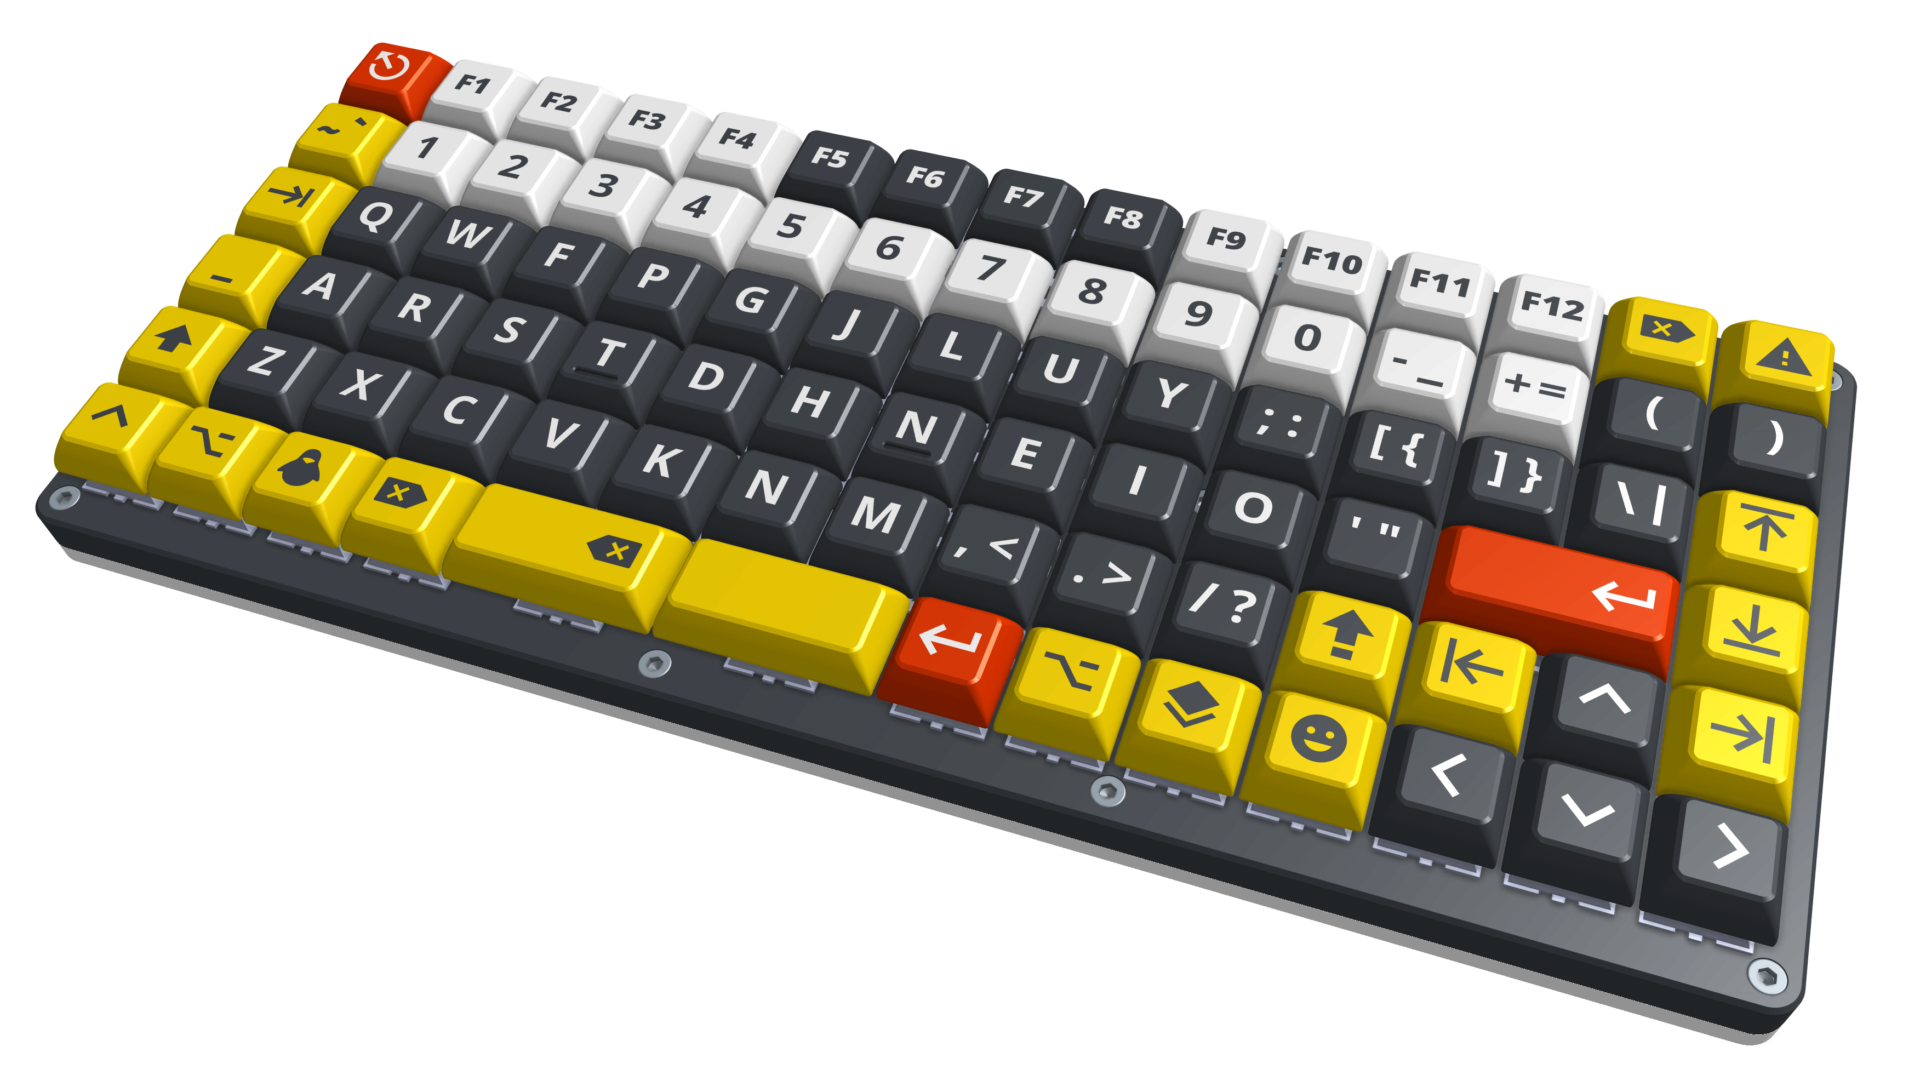 Keyboard render with keycaps